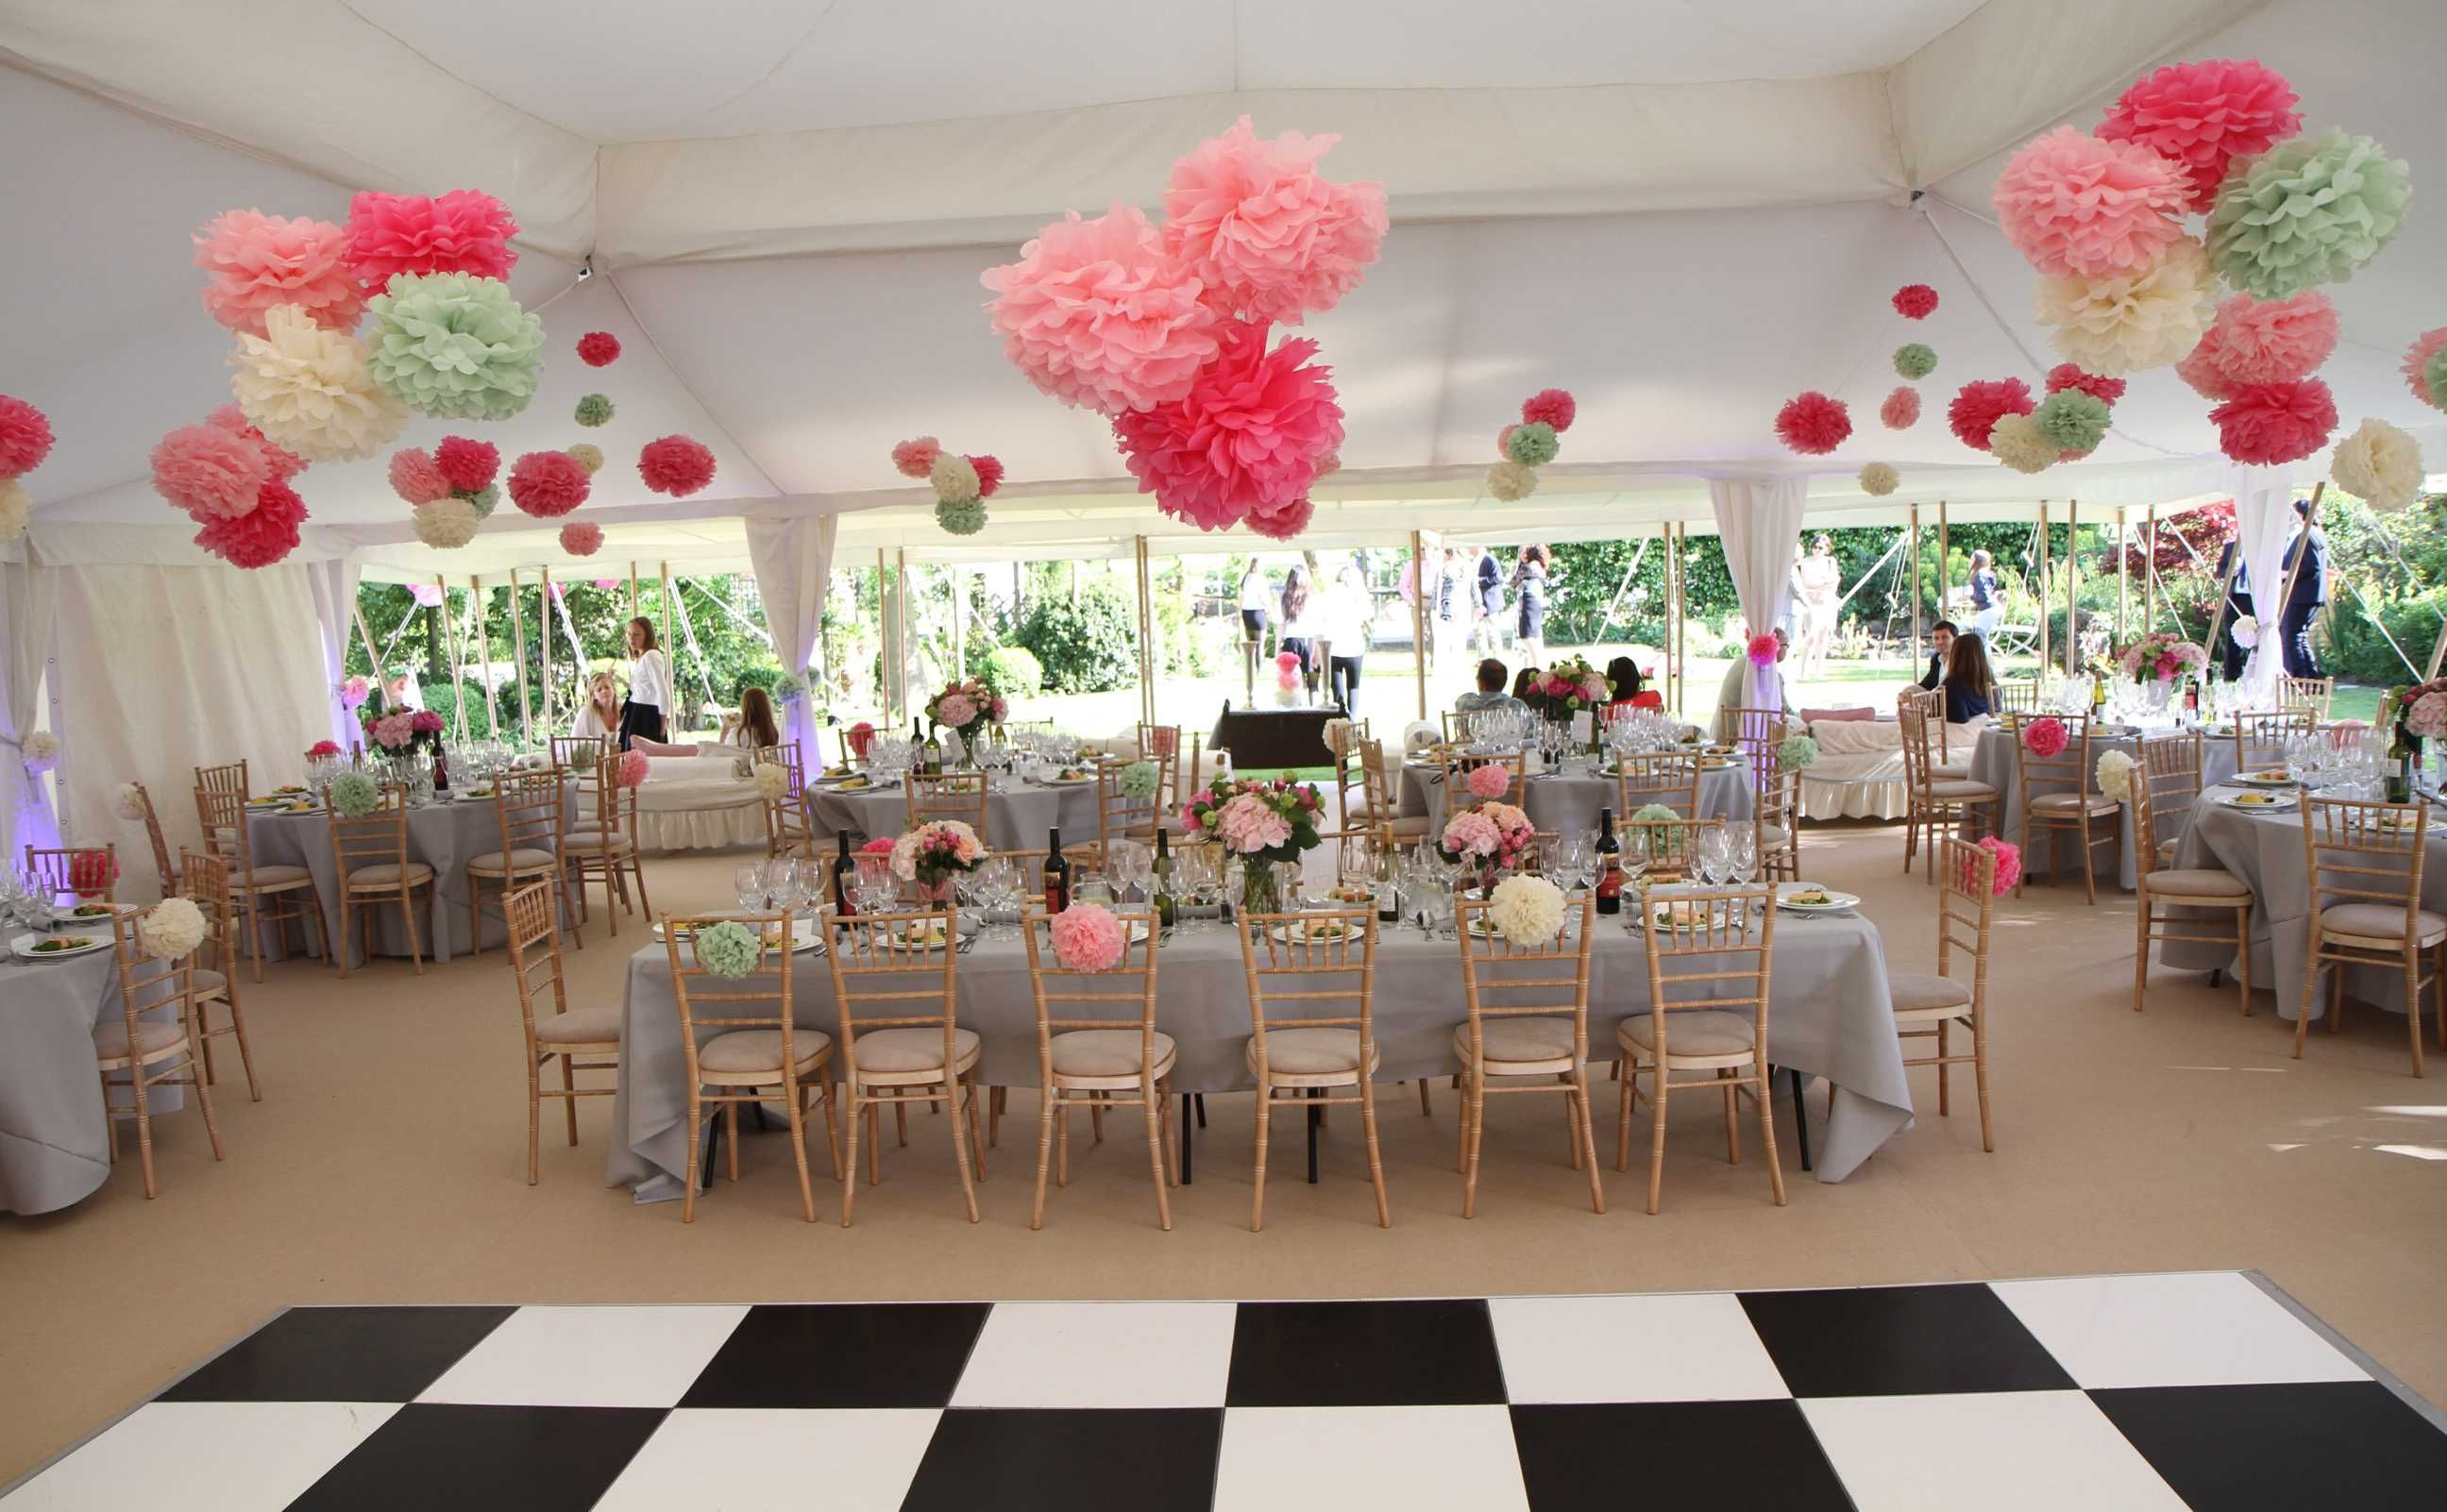 Wedding Decor Rental London Venue Decoration Service The